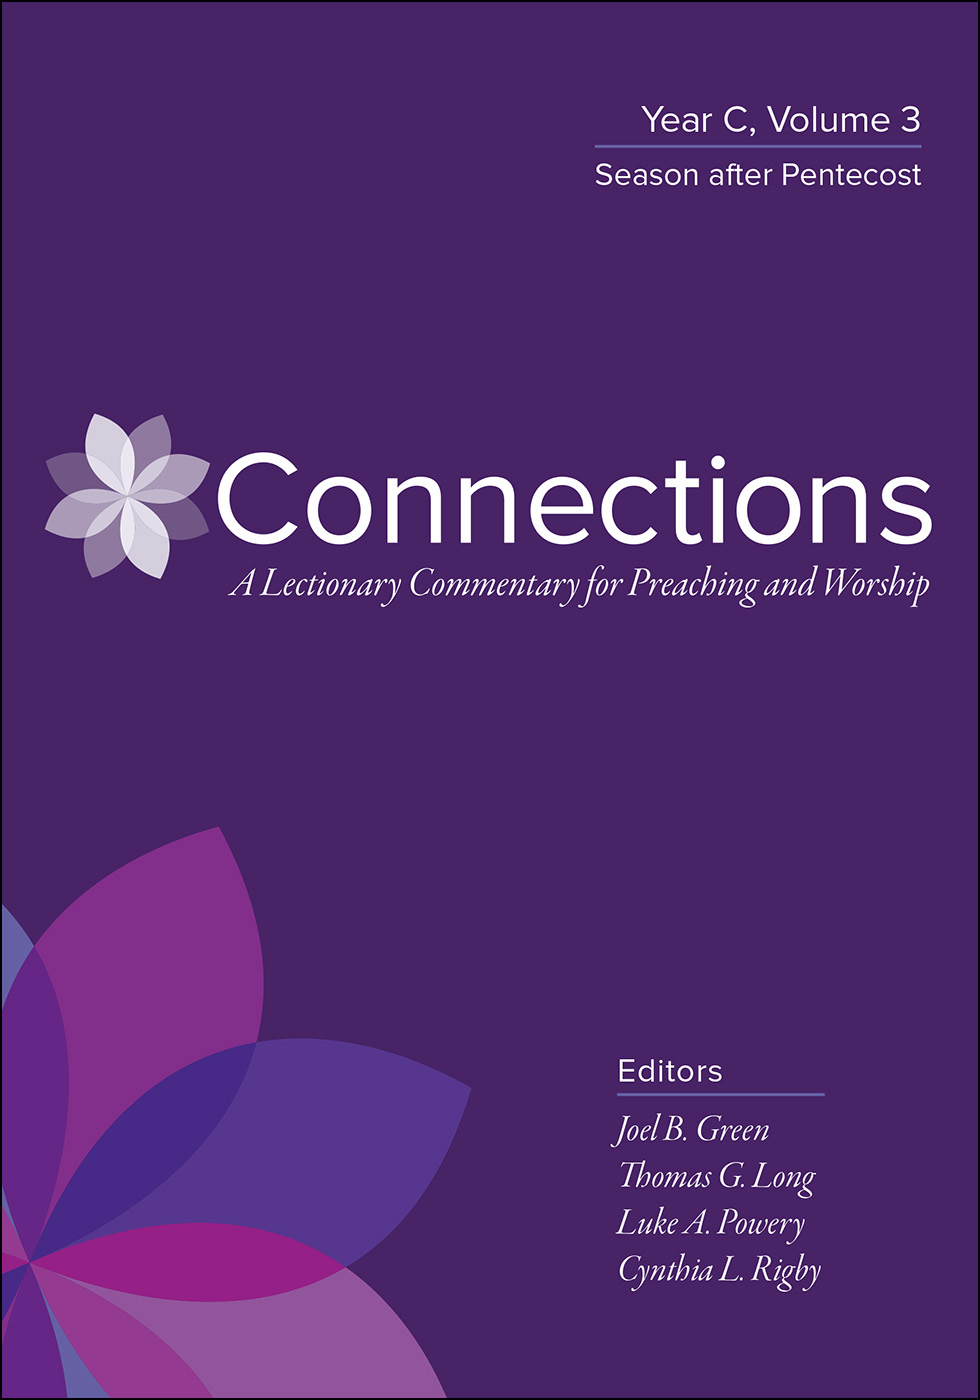 Connections: Year C, Volume 3